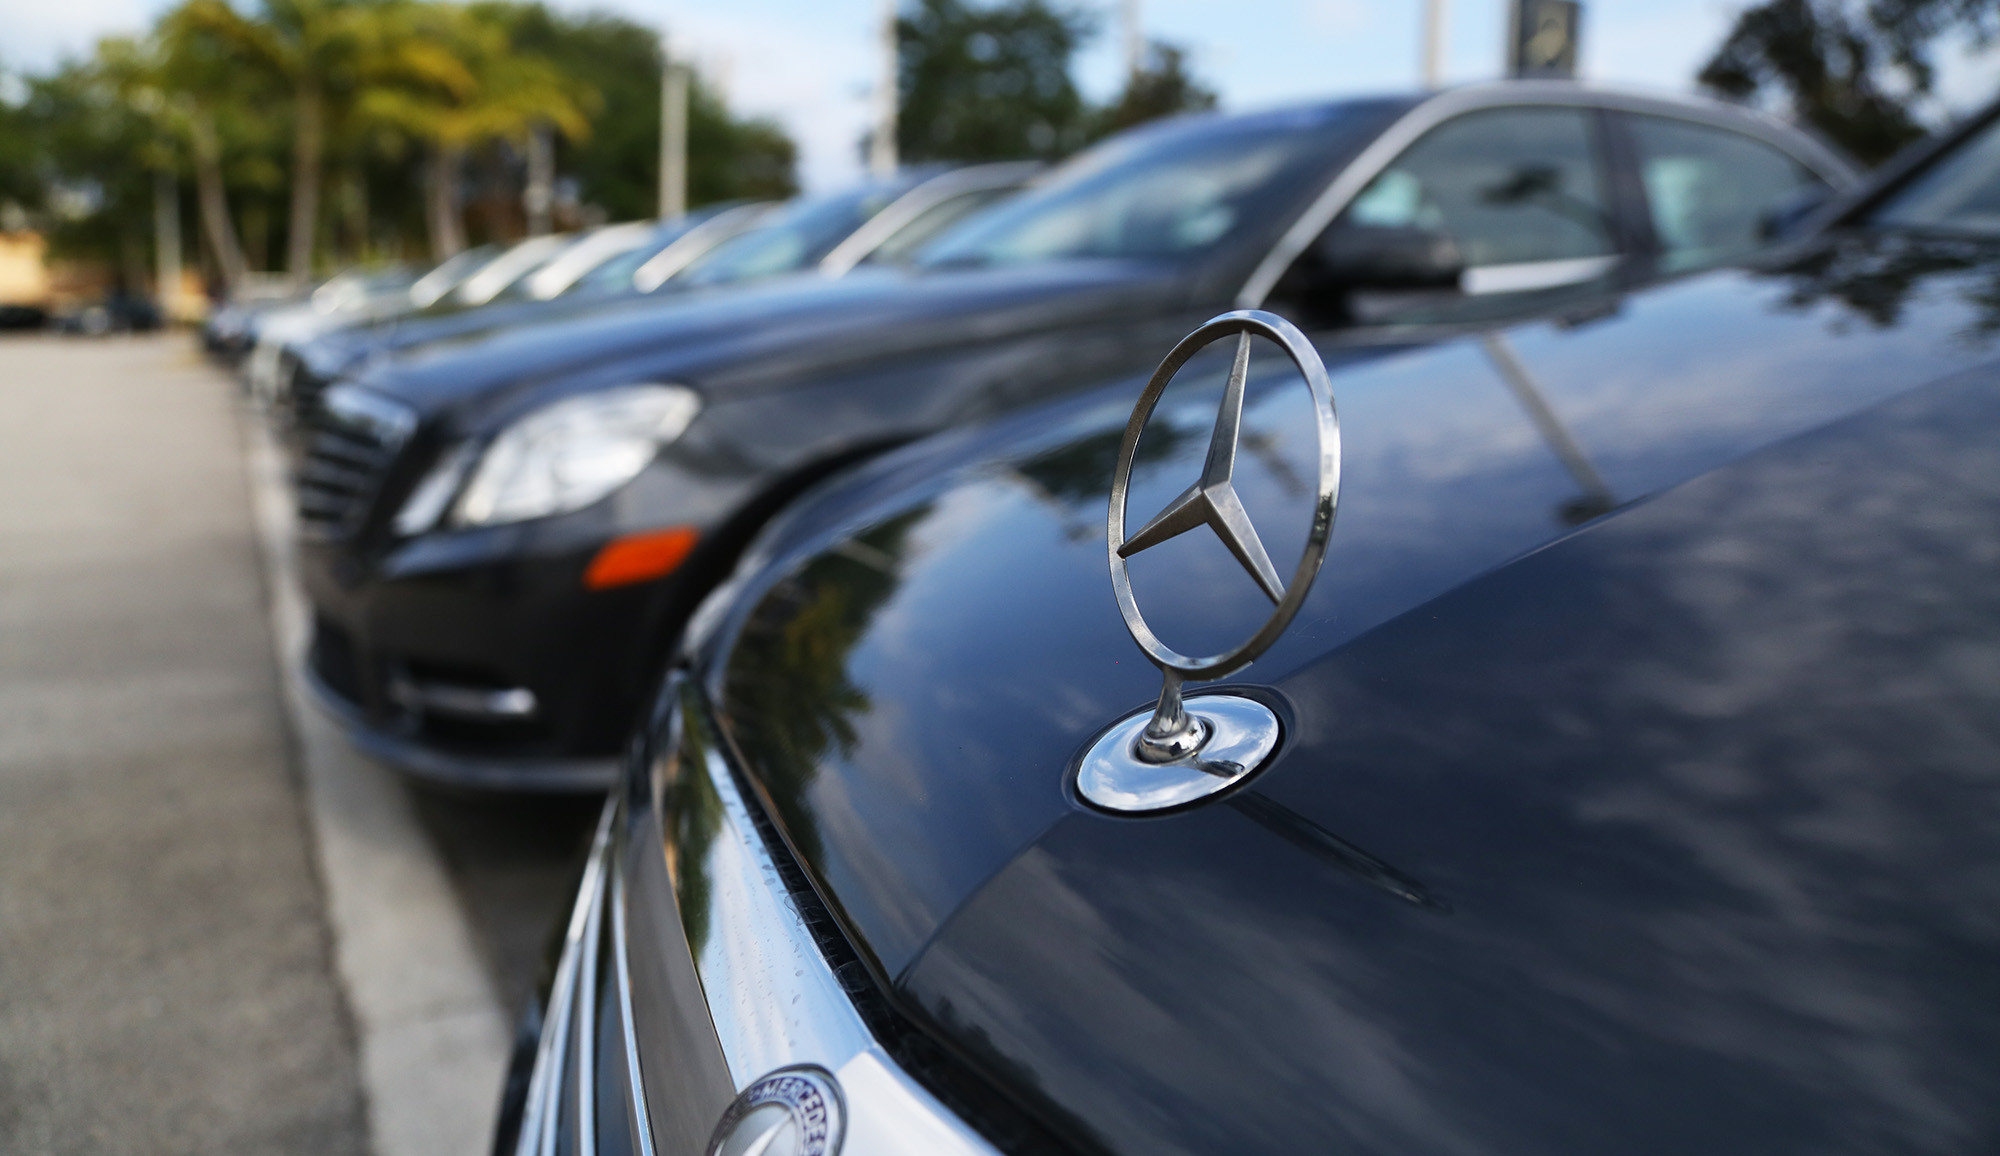 Mercedes For Sale >> South Florida is a haven for auto leasing - Sun Sentinel